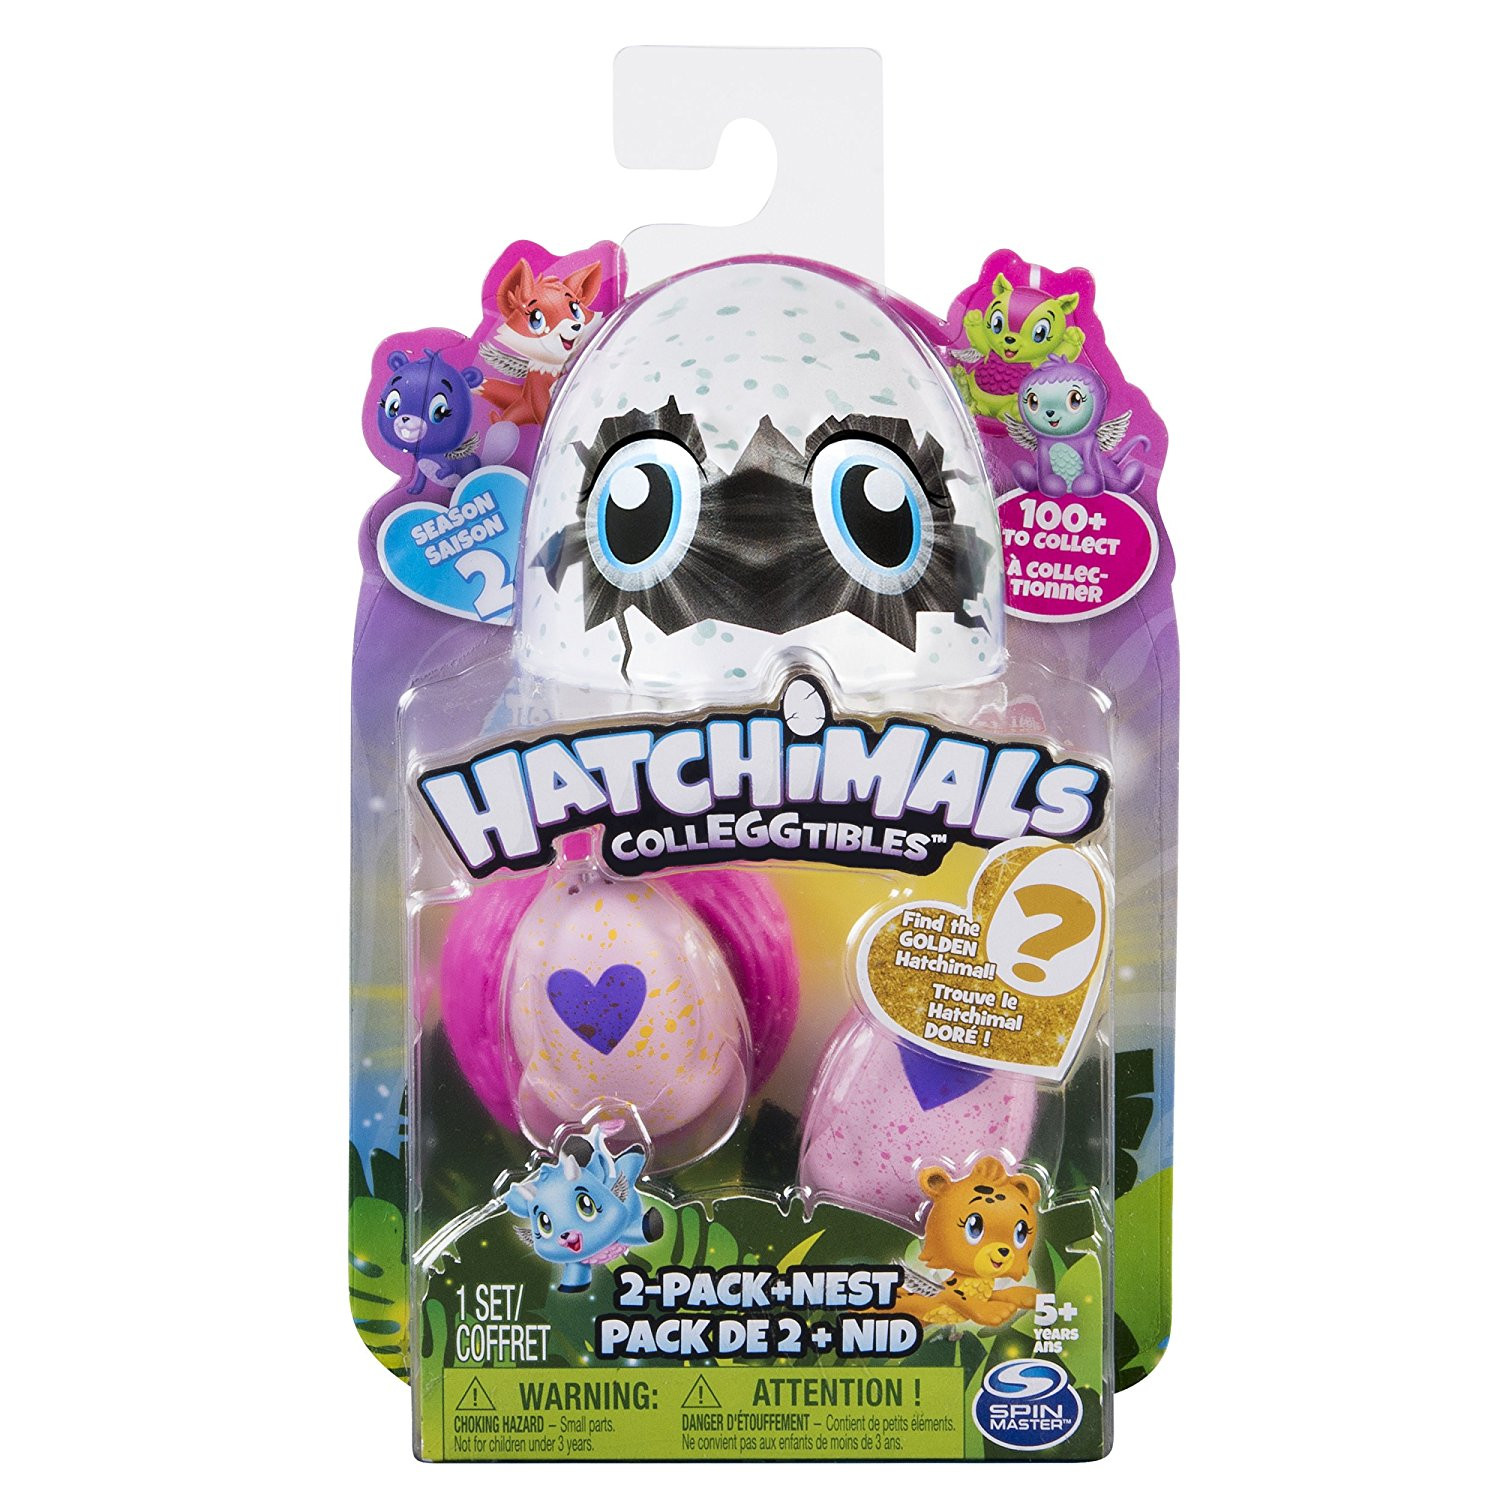 Nid Spin Master hatchimals colleggtibles s5 2er Pack